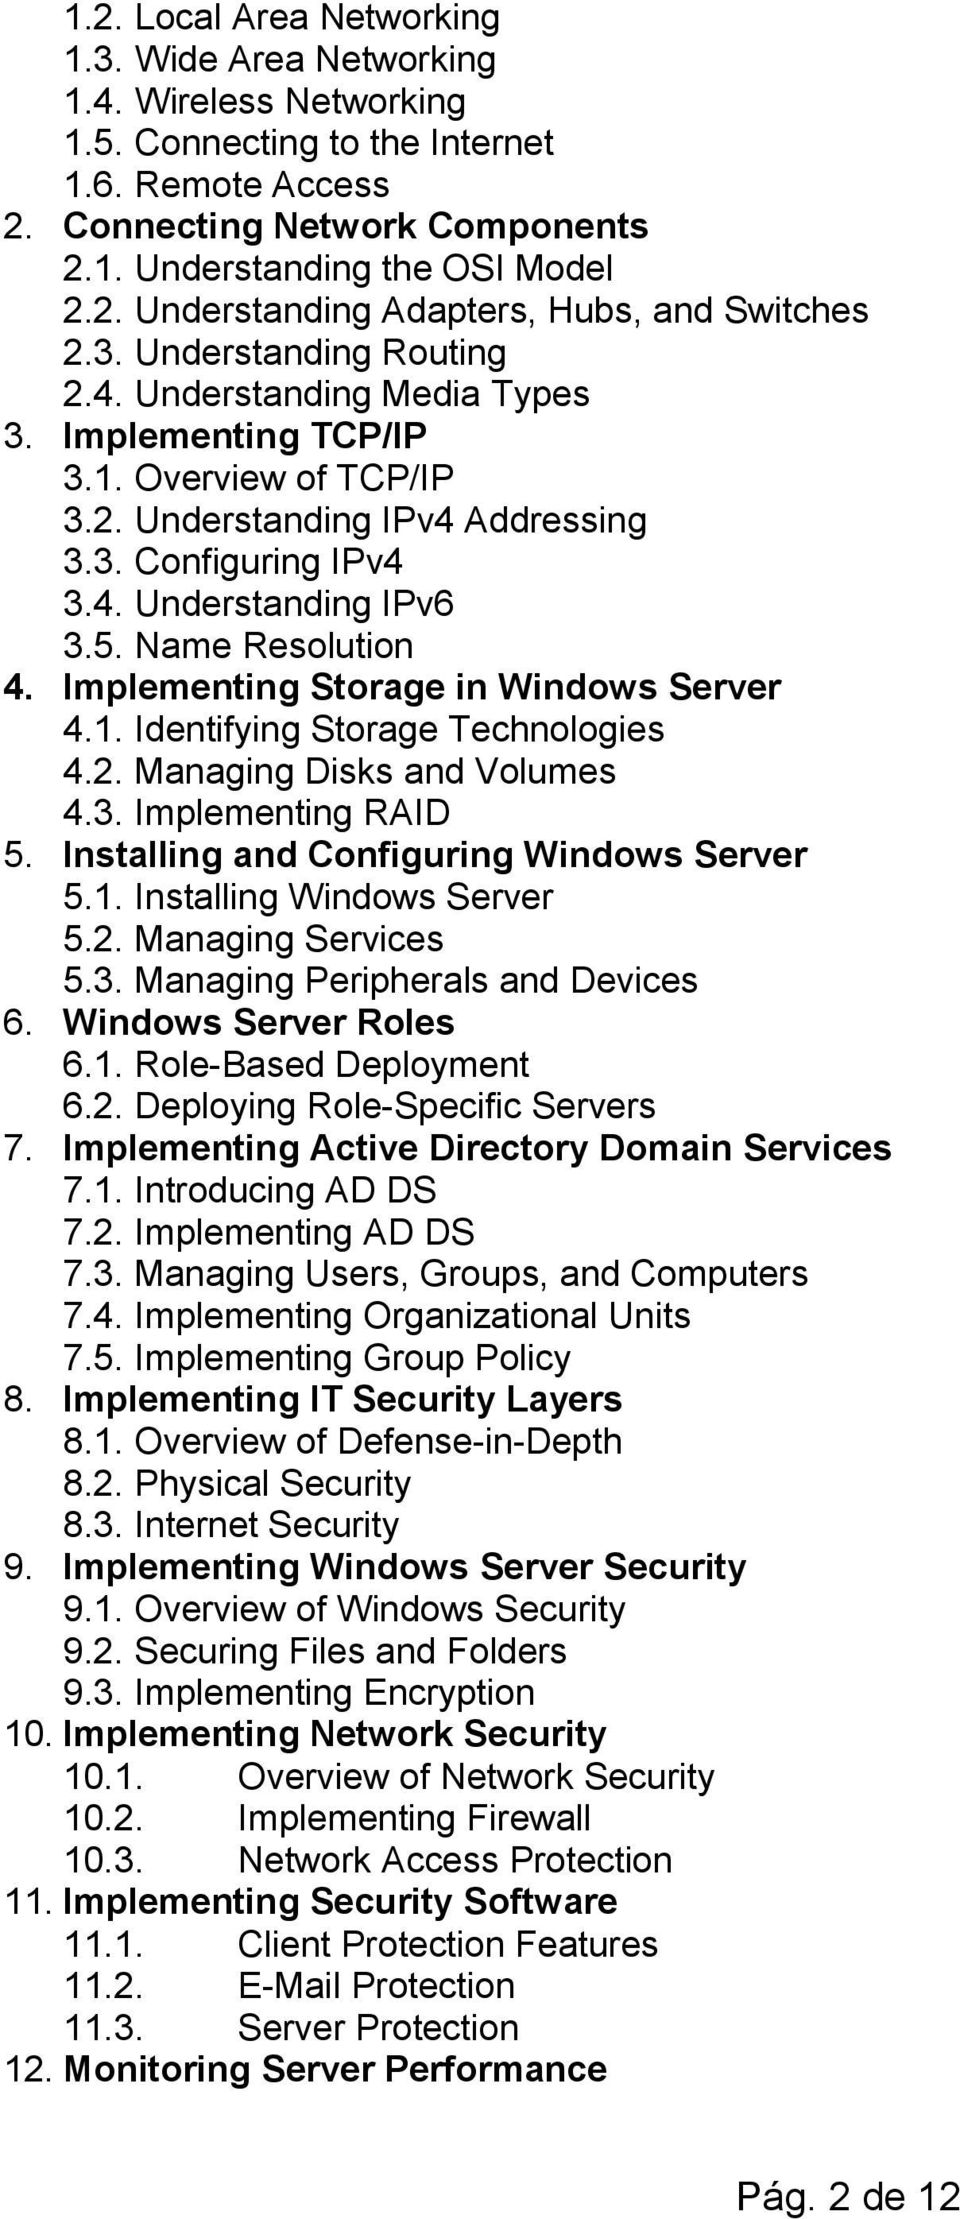 Name Resolution 4. Implementing Storage in Windows Server 4.1. Identifying Storage Technologies 4.2. Managing Disks and Volumes 4.3. Implementing RAID 5. Installing and Configuring Windows Server 5.1. Installing Windows Server 5.